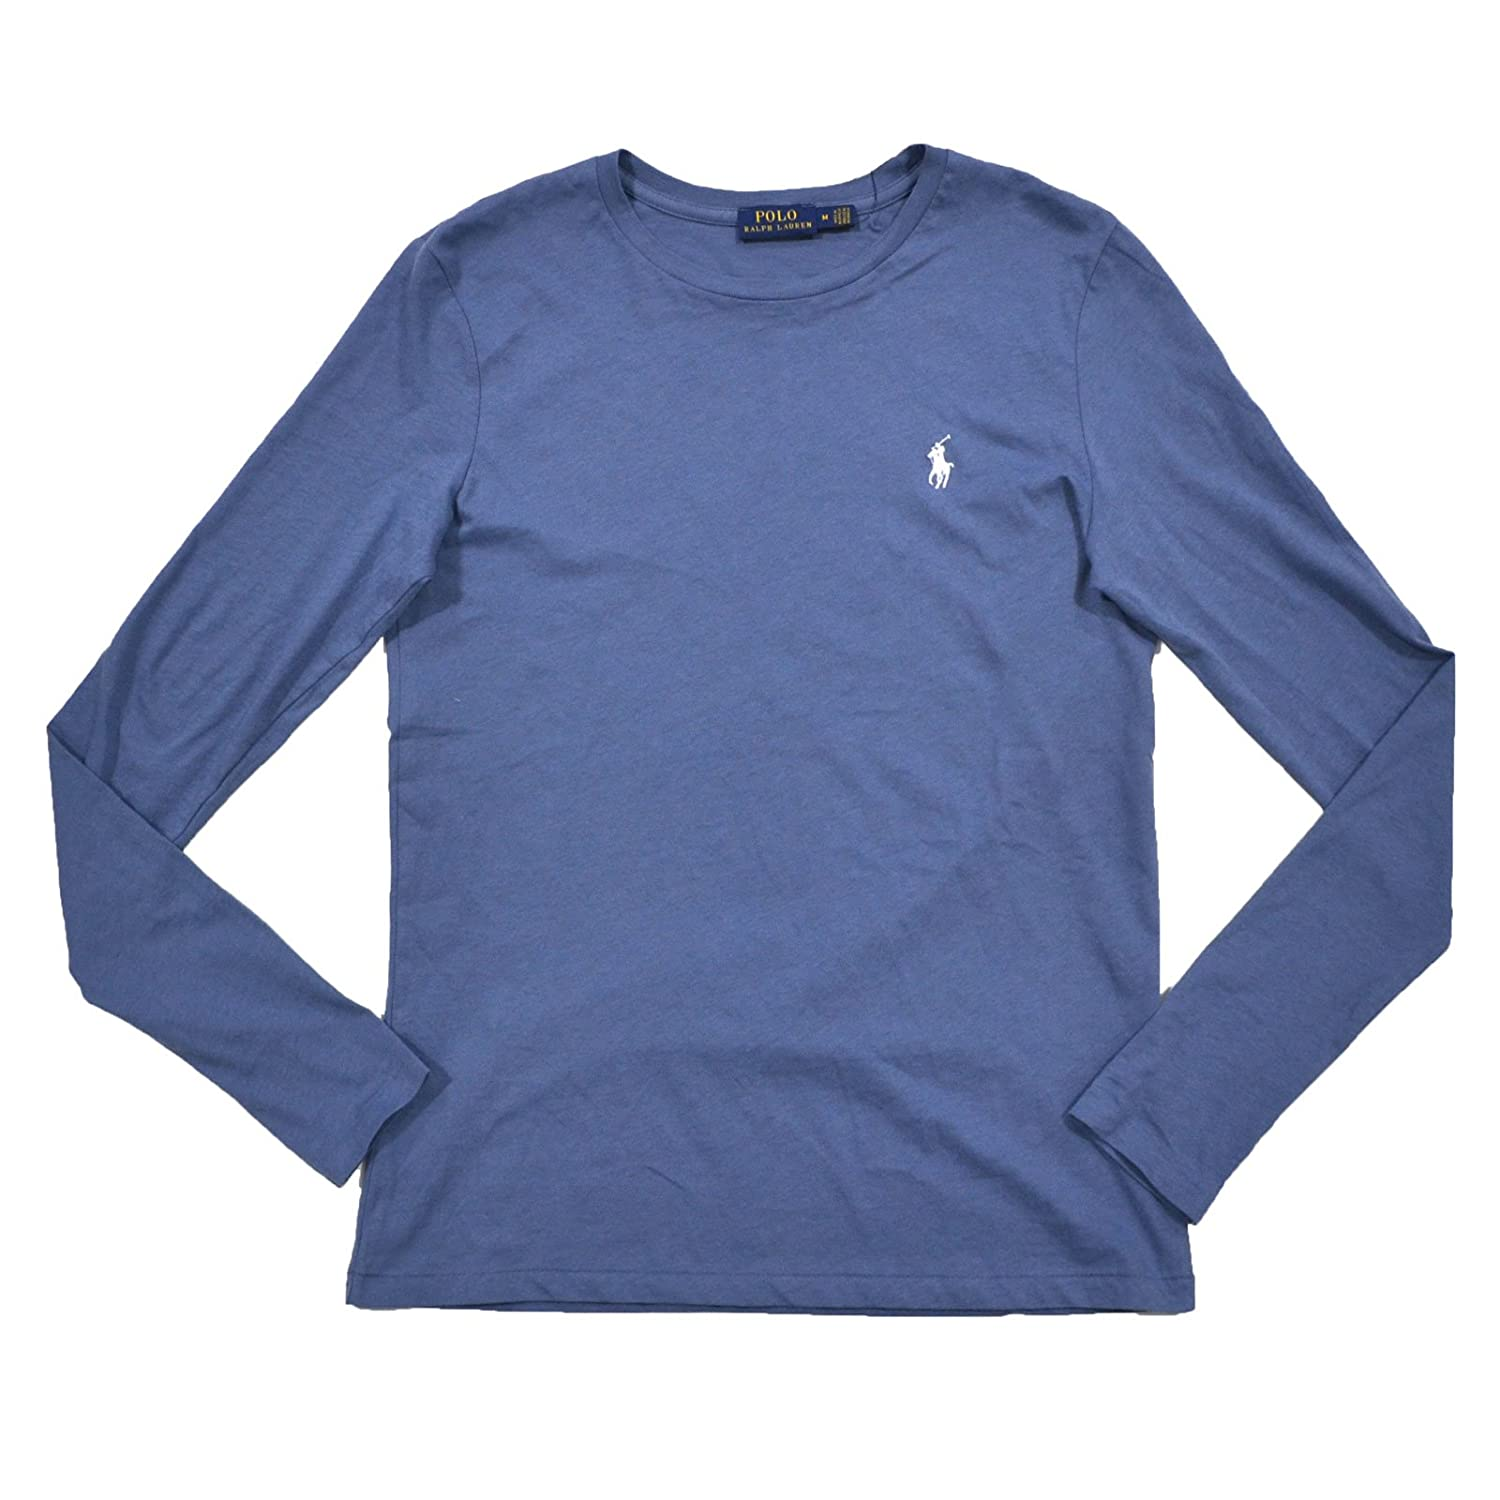 cc00f8109d7 Polo Ralph Lauren is a pinnacle of fashion and design. These long sleeve jersey  tees are lightweight and perfect for layering or wearing alone.